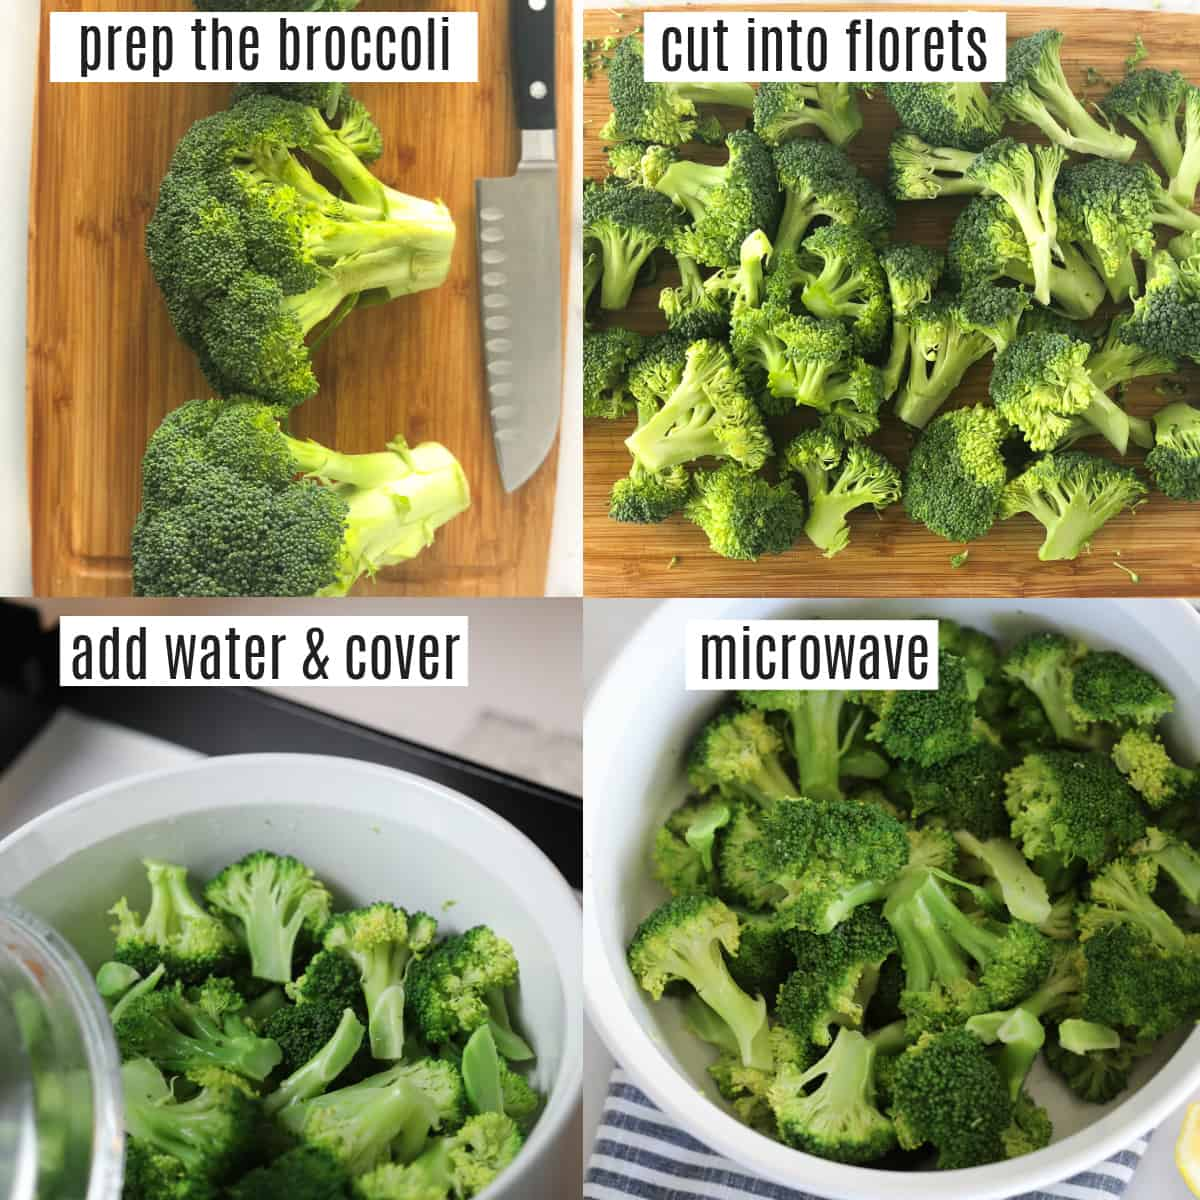 steaming broccoli in microwave recipe steps